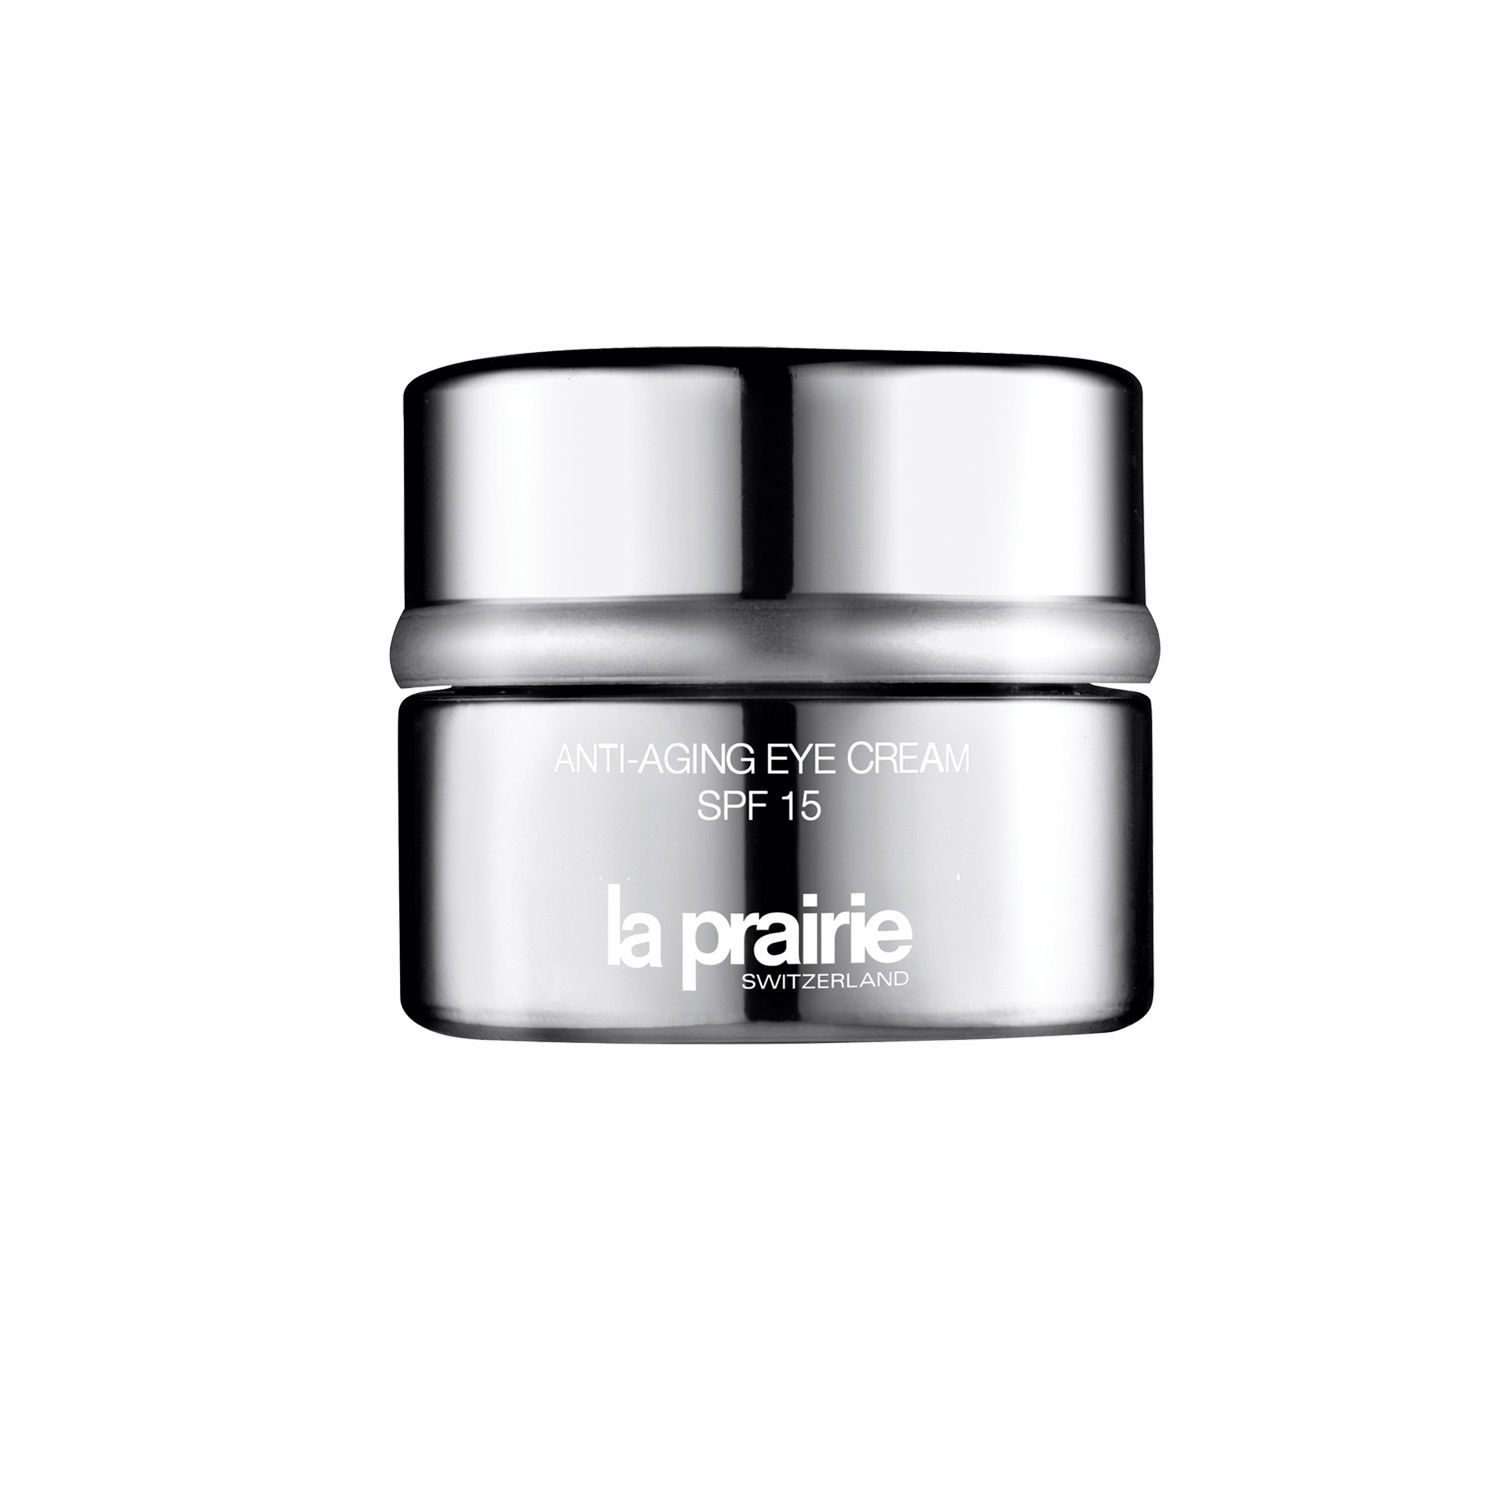 la prairie anti aging eye cream spf15 15 ml preisvergleich. Black Bedroom Furniture Sets. Home Design Ideas